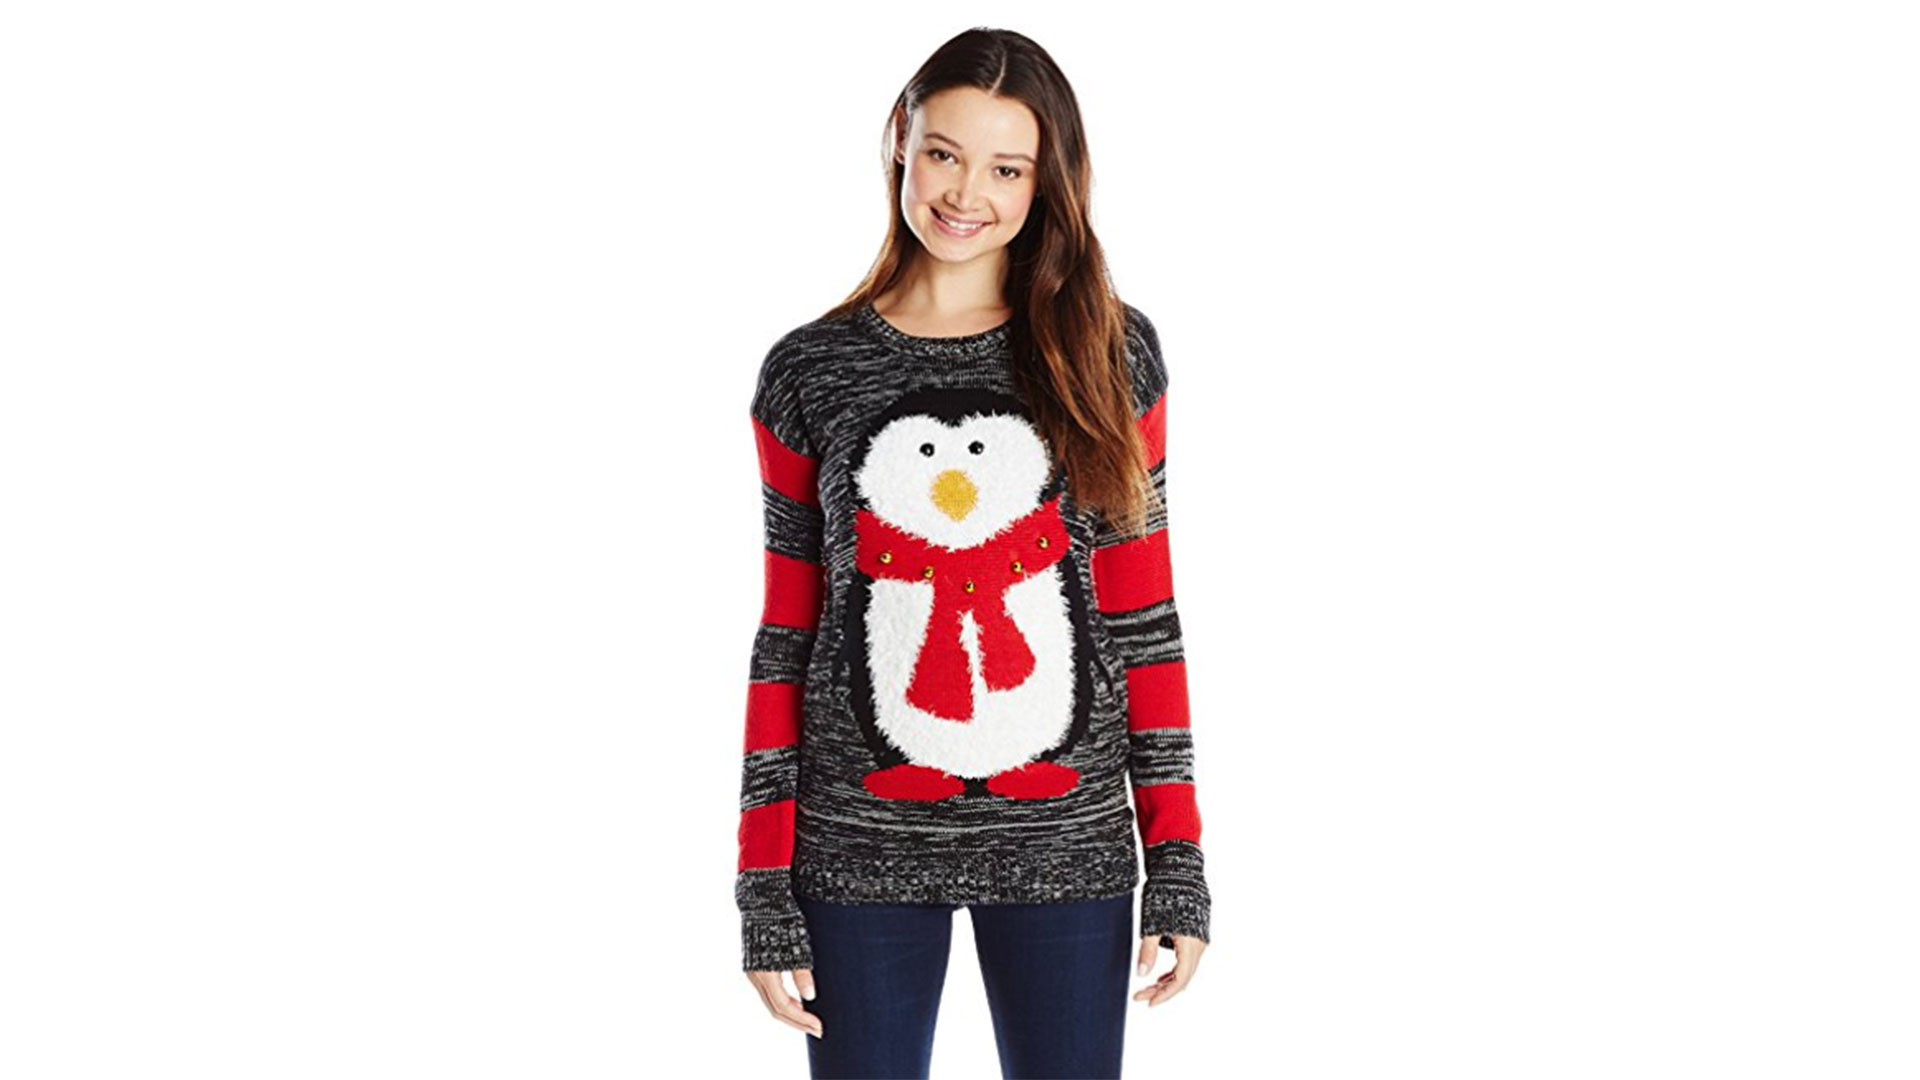 RX_1711_ Tacky Christmas Sweaters_ Jingle Bell Penguin Sweater